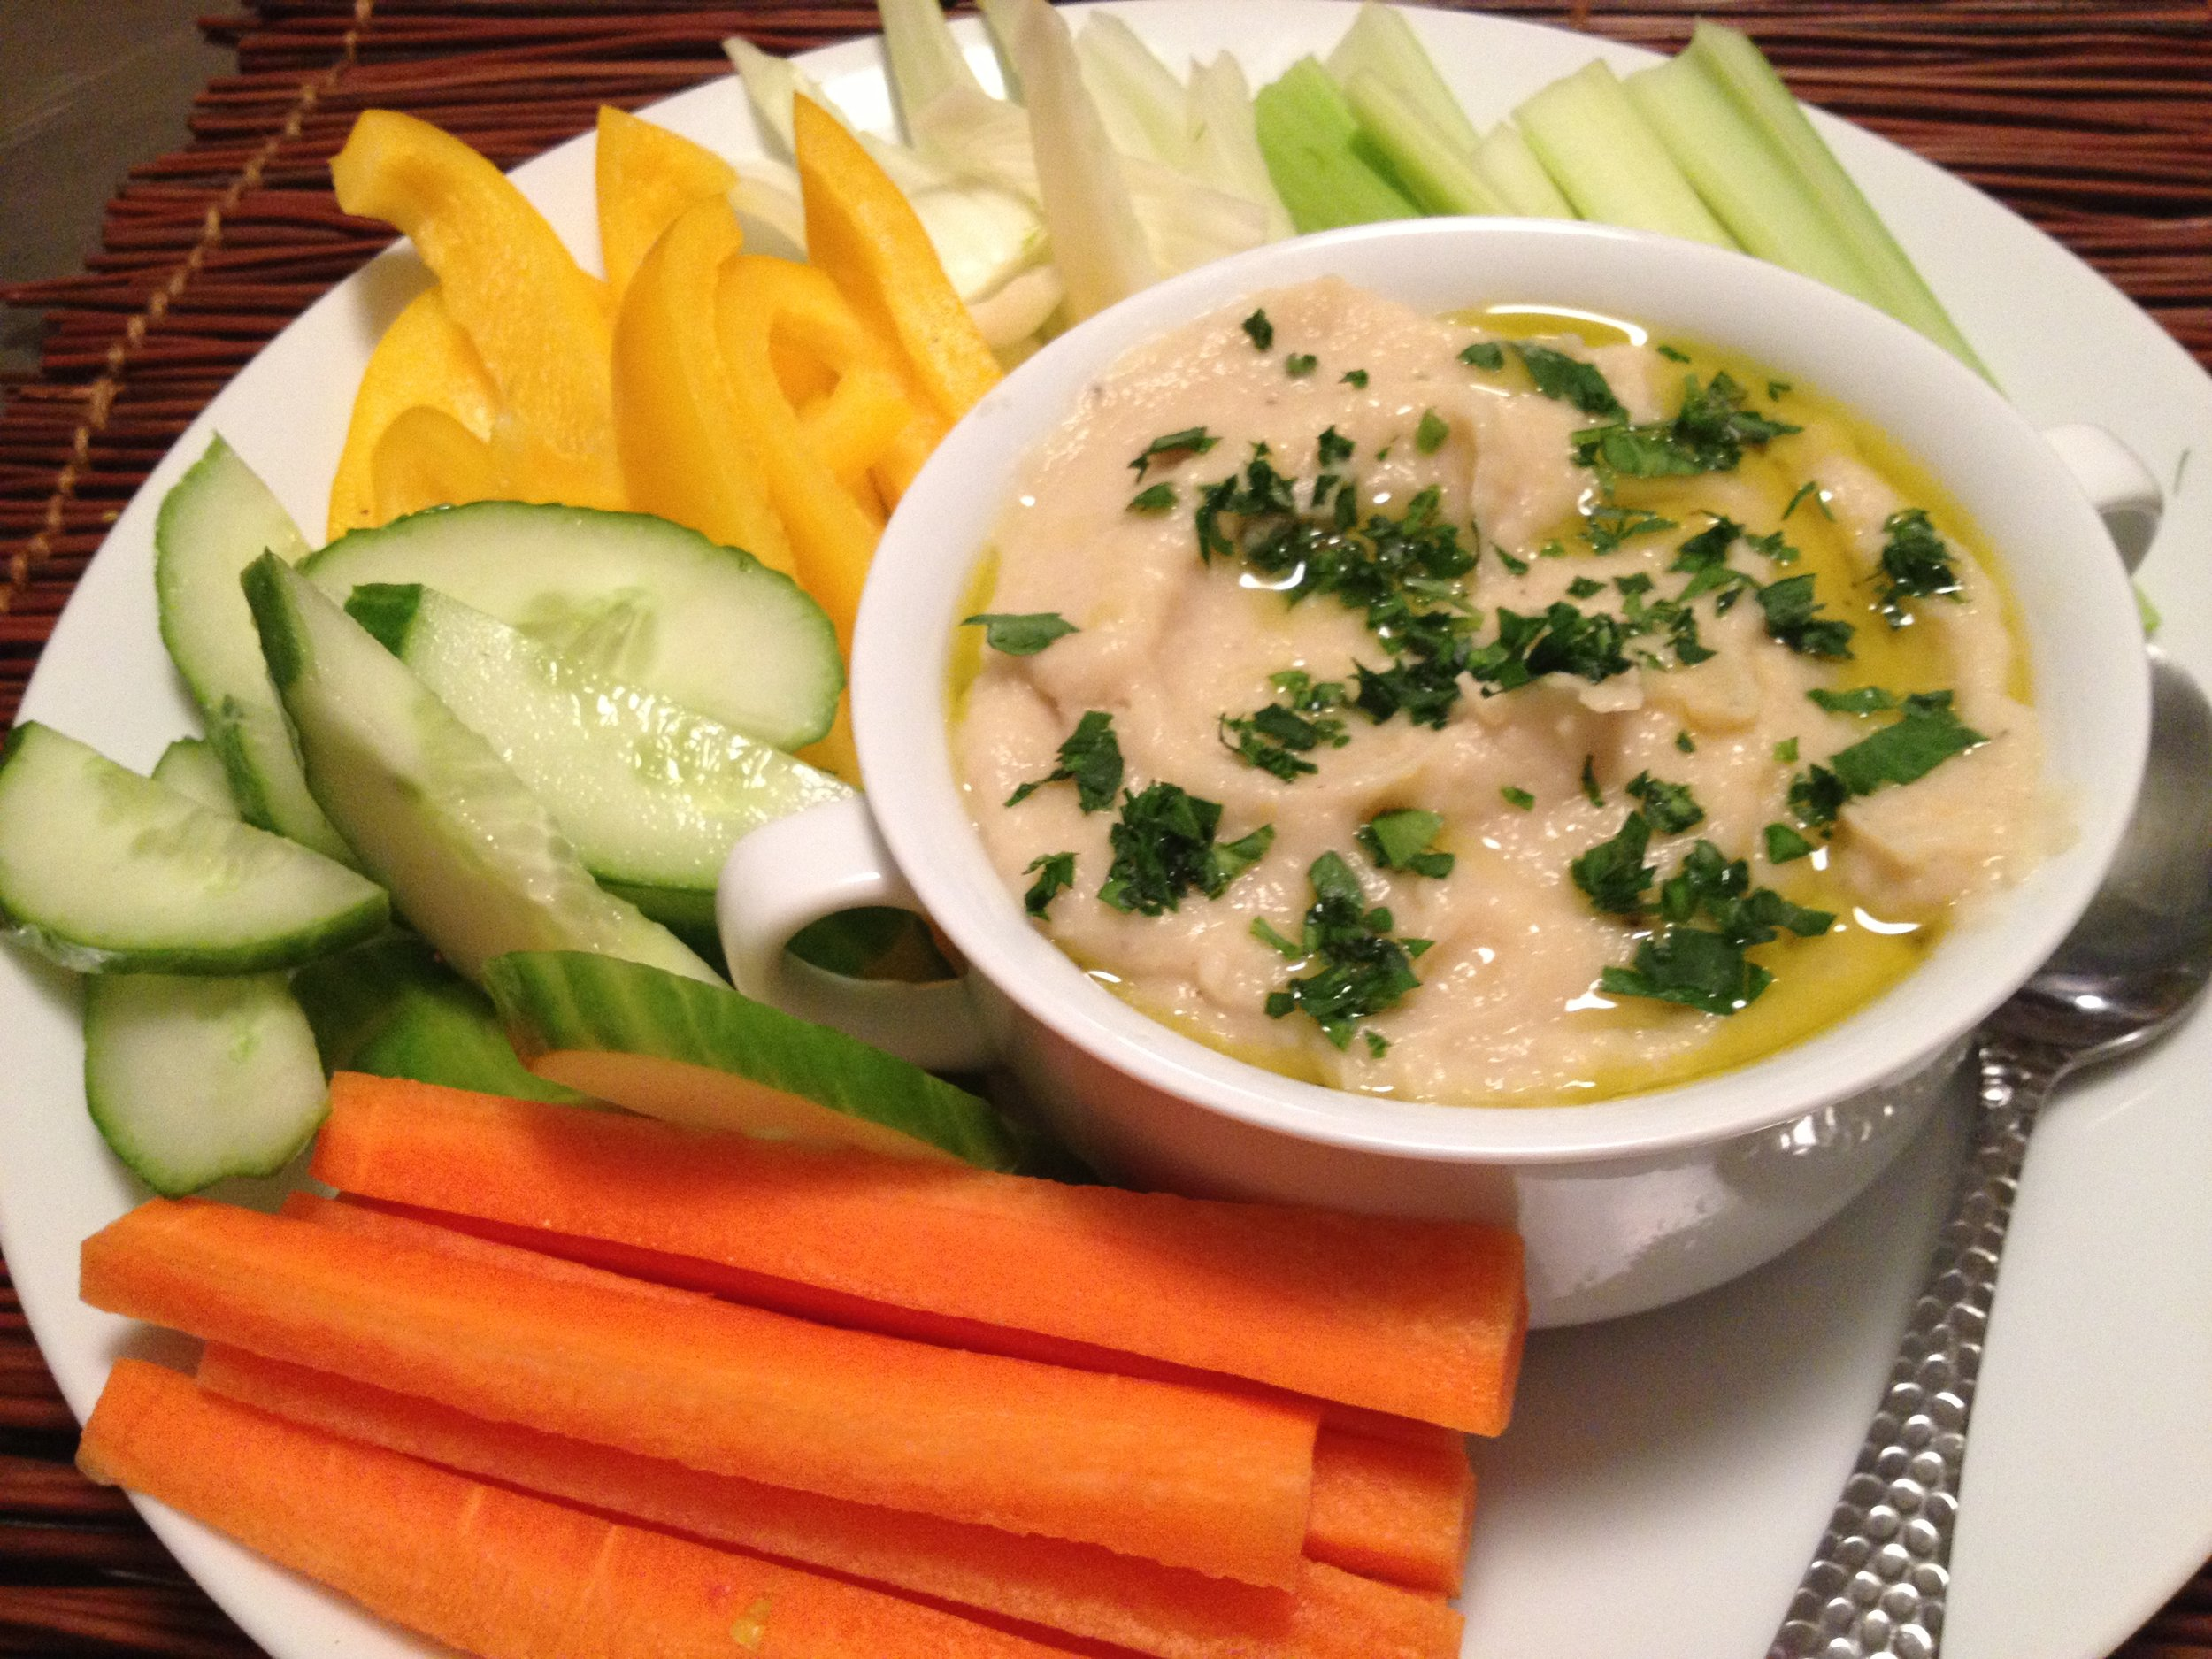 White Bean and Artichoke Spread, with assorted crudite